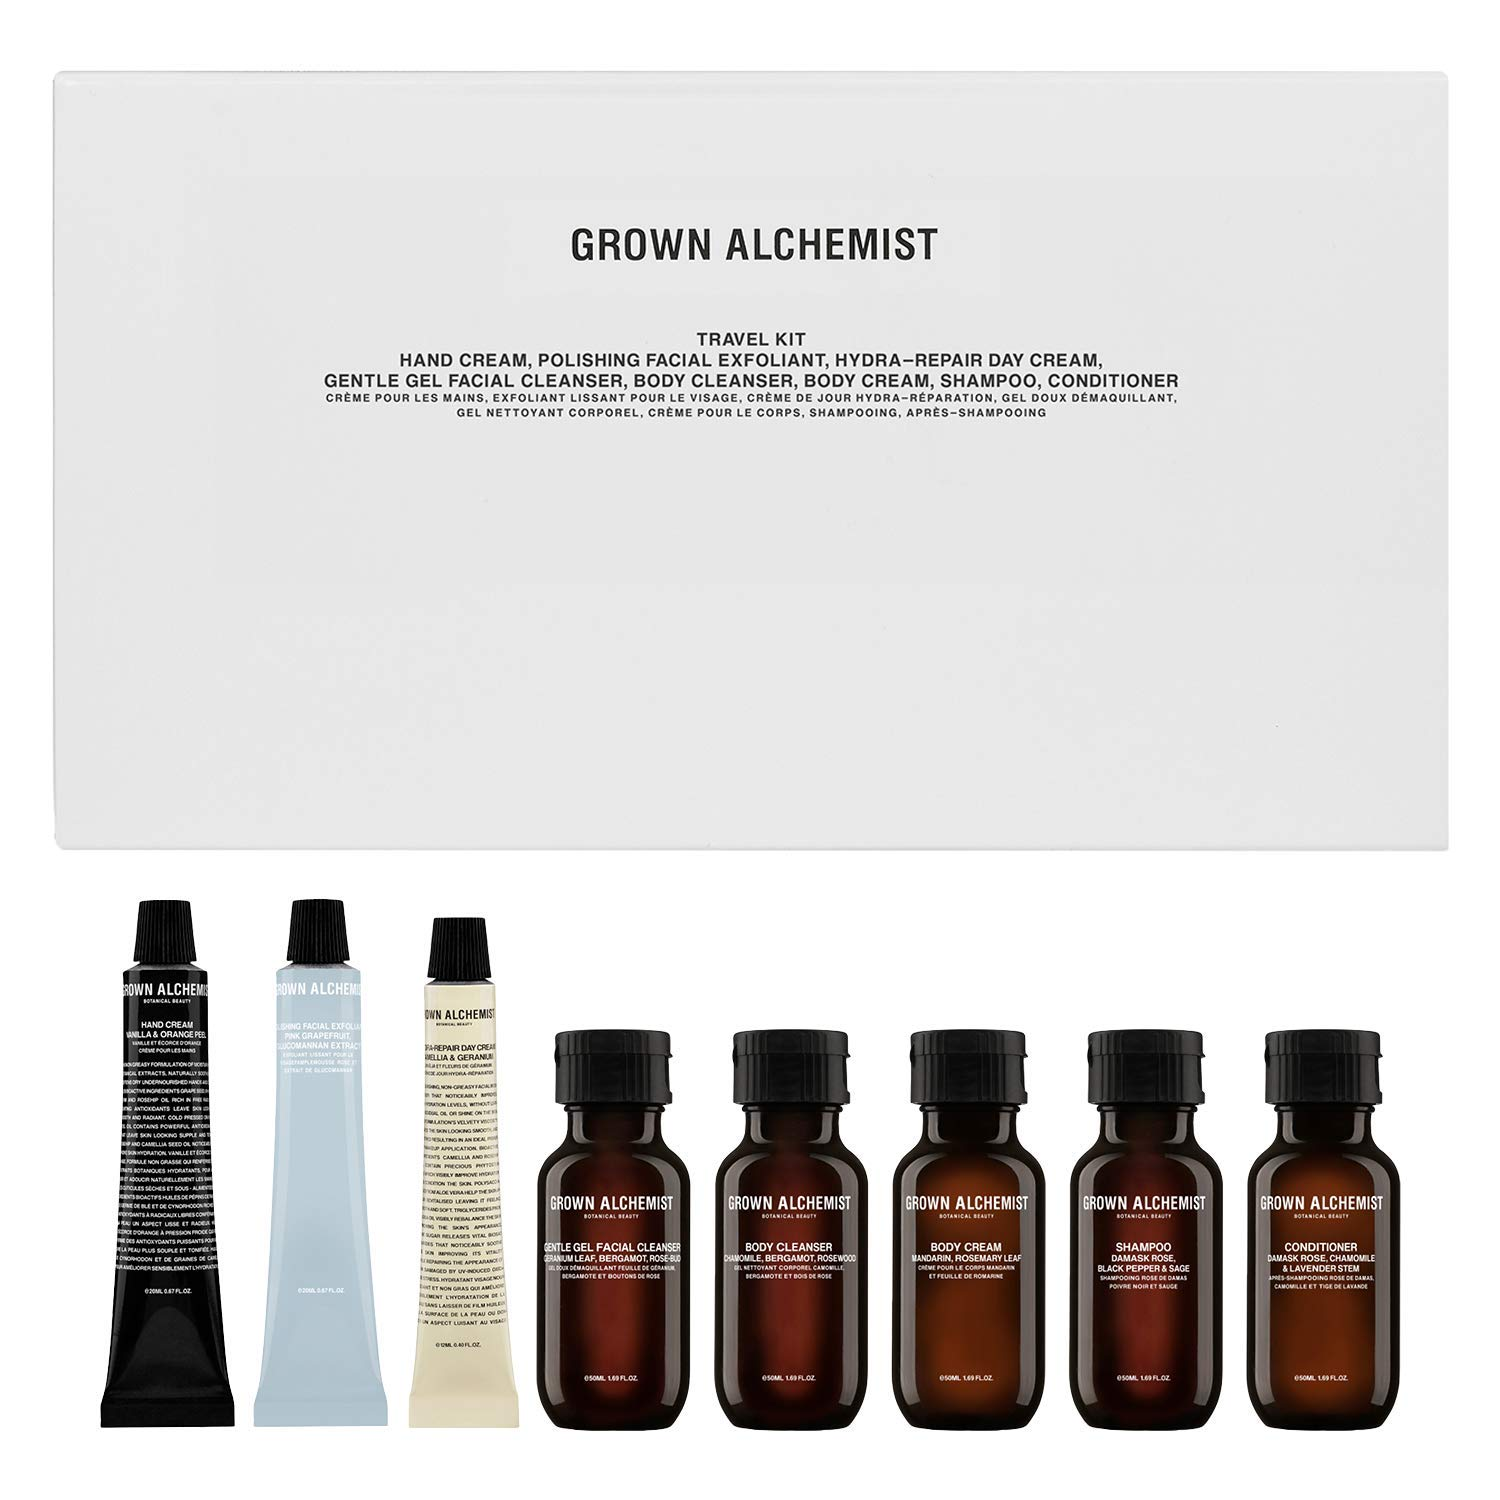 Grown Alchemist Travel Kit - 8 Piece Mini Set for Face, Body & Hair Care - Made with Organic Ingredients